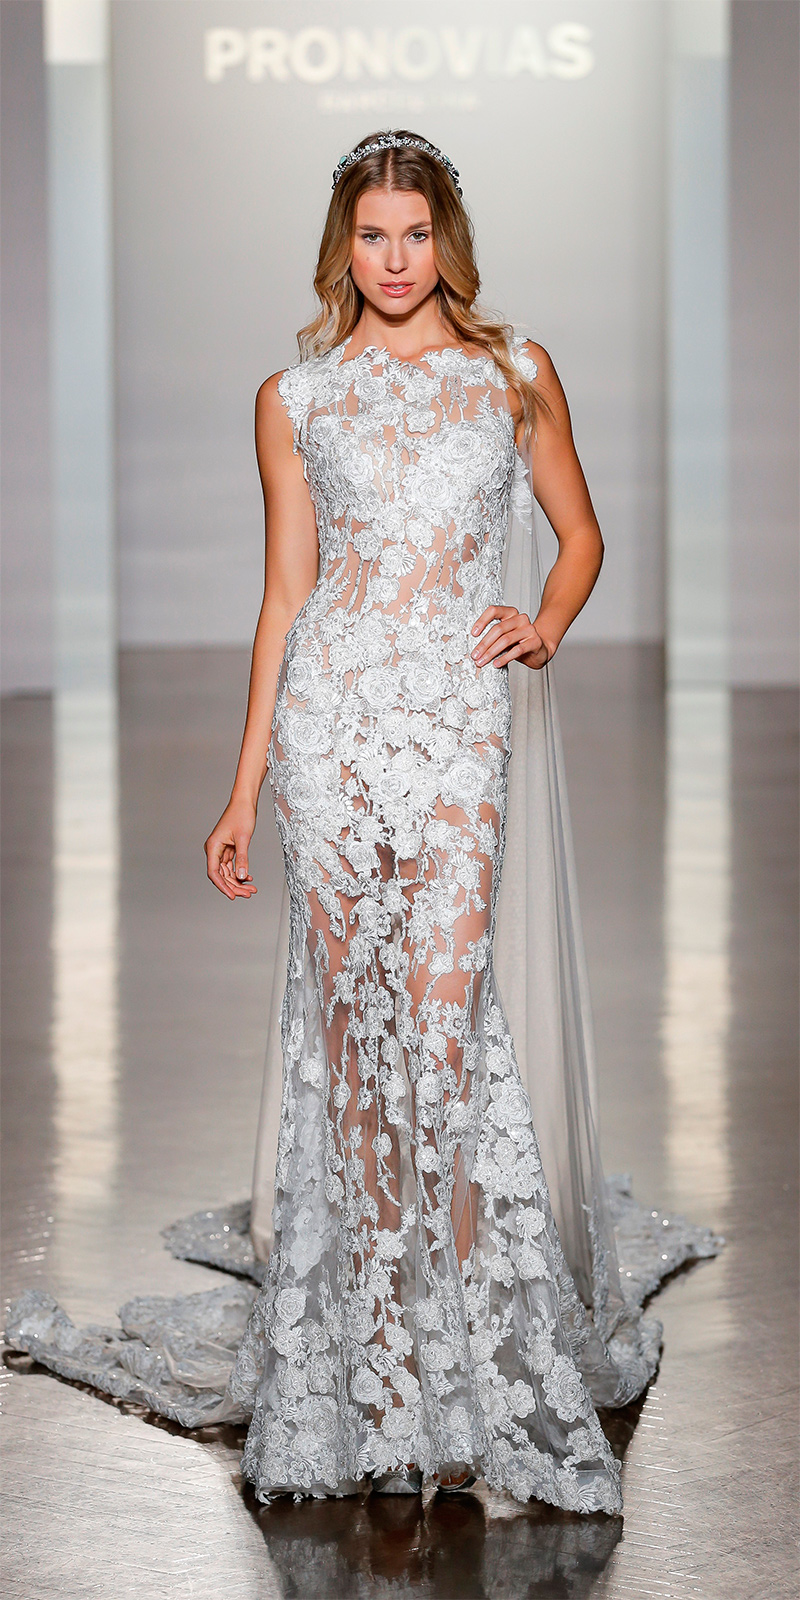 pronovias-ny-fashion-show_natura